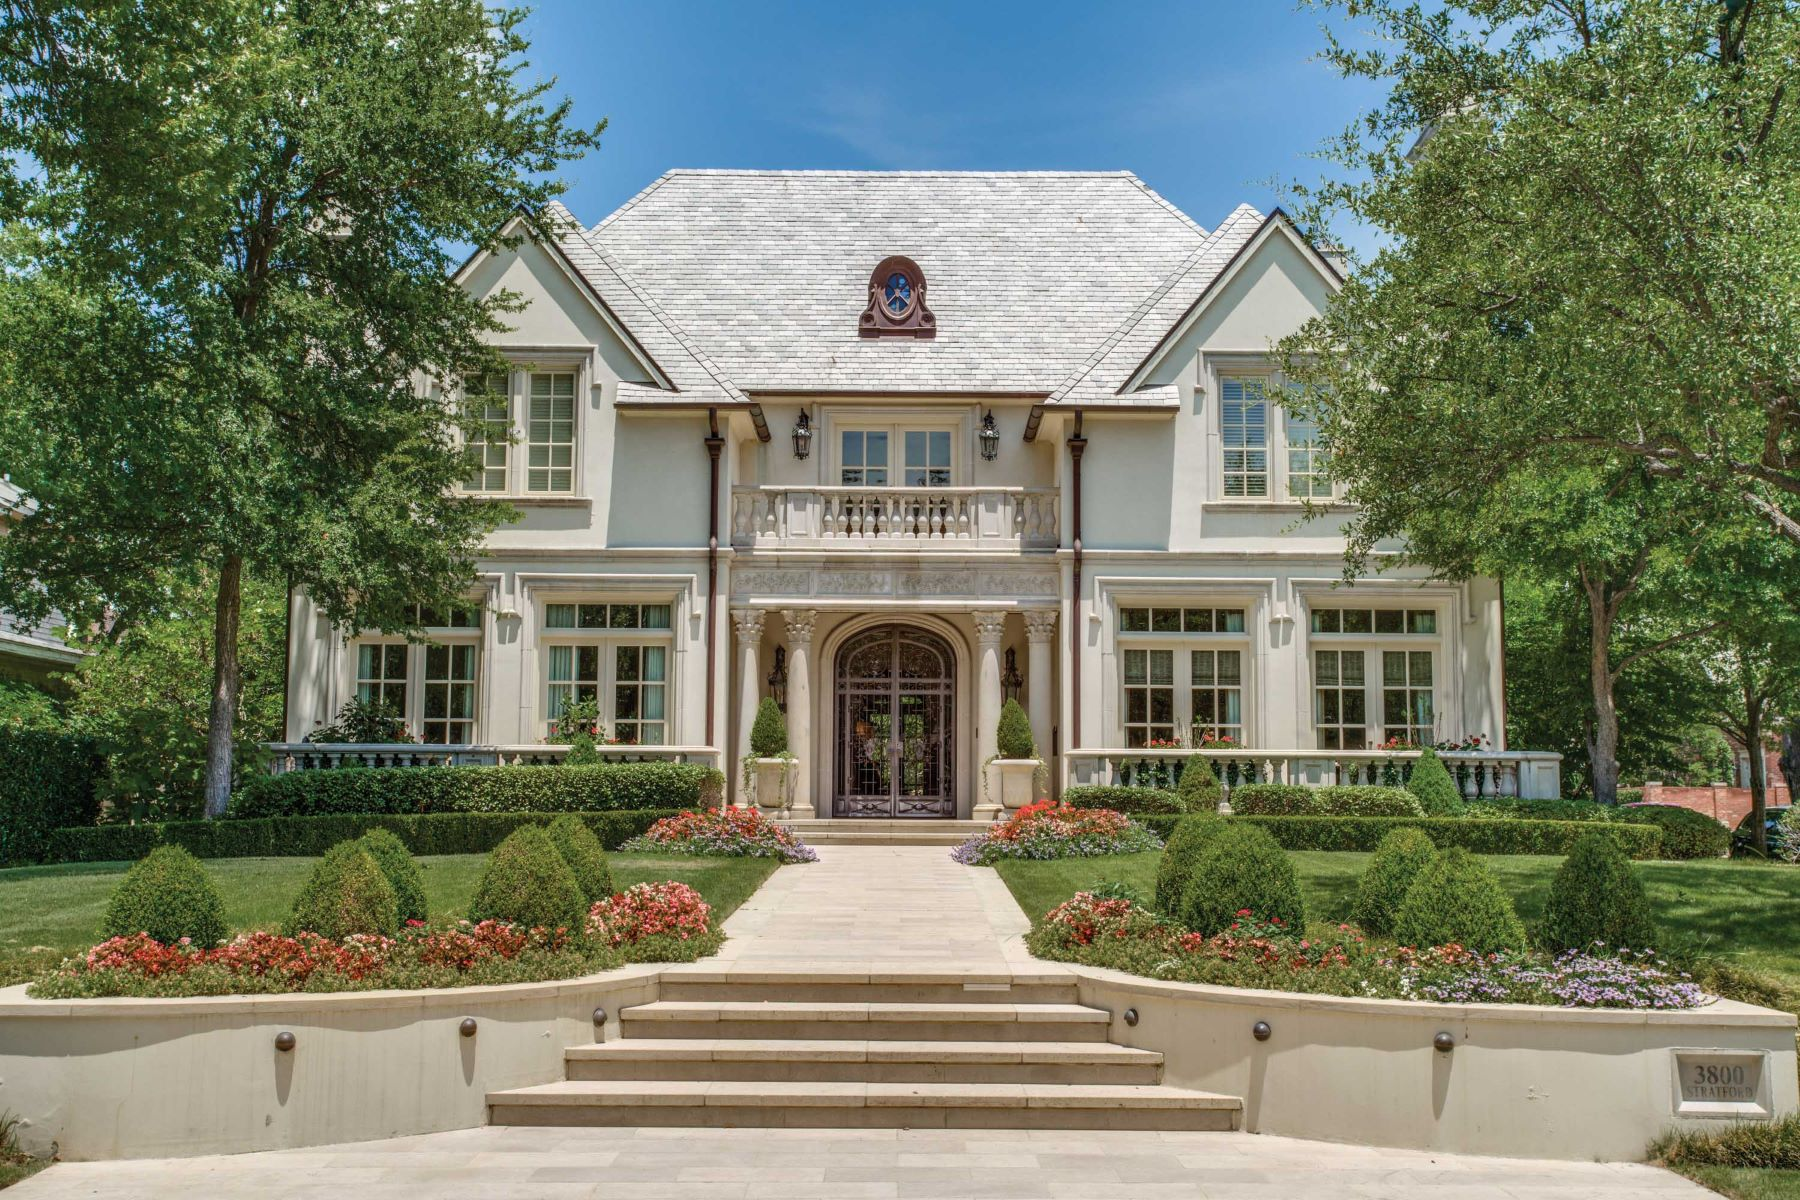 Single Family Homes for Sale at Stunning French in Highland Park 3800 Stratford Avenue Highland Park, Texas 75205 United States